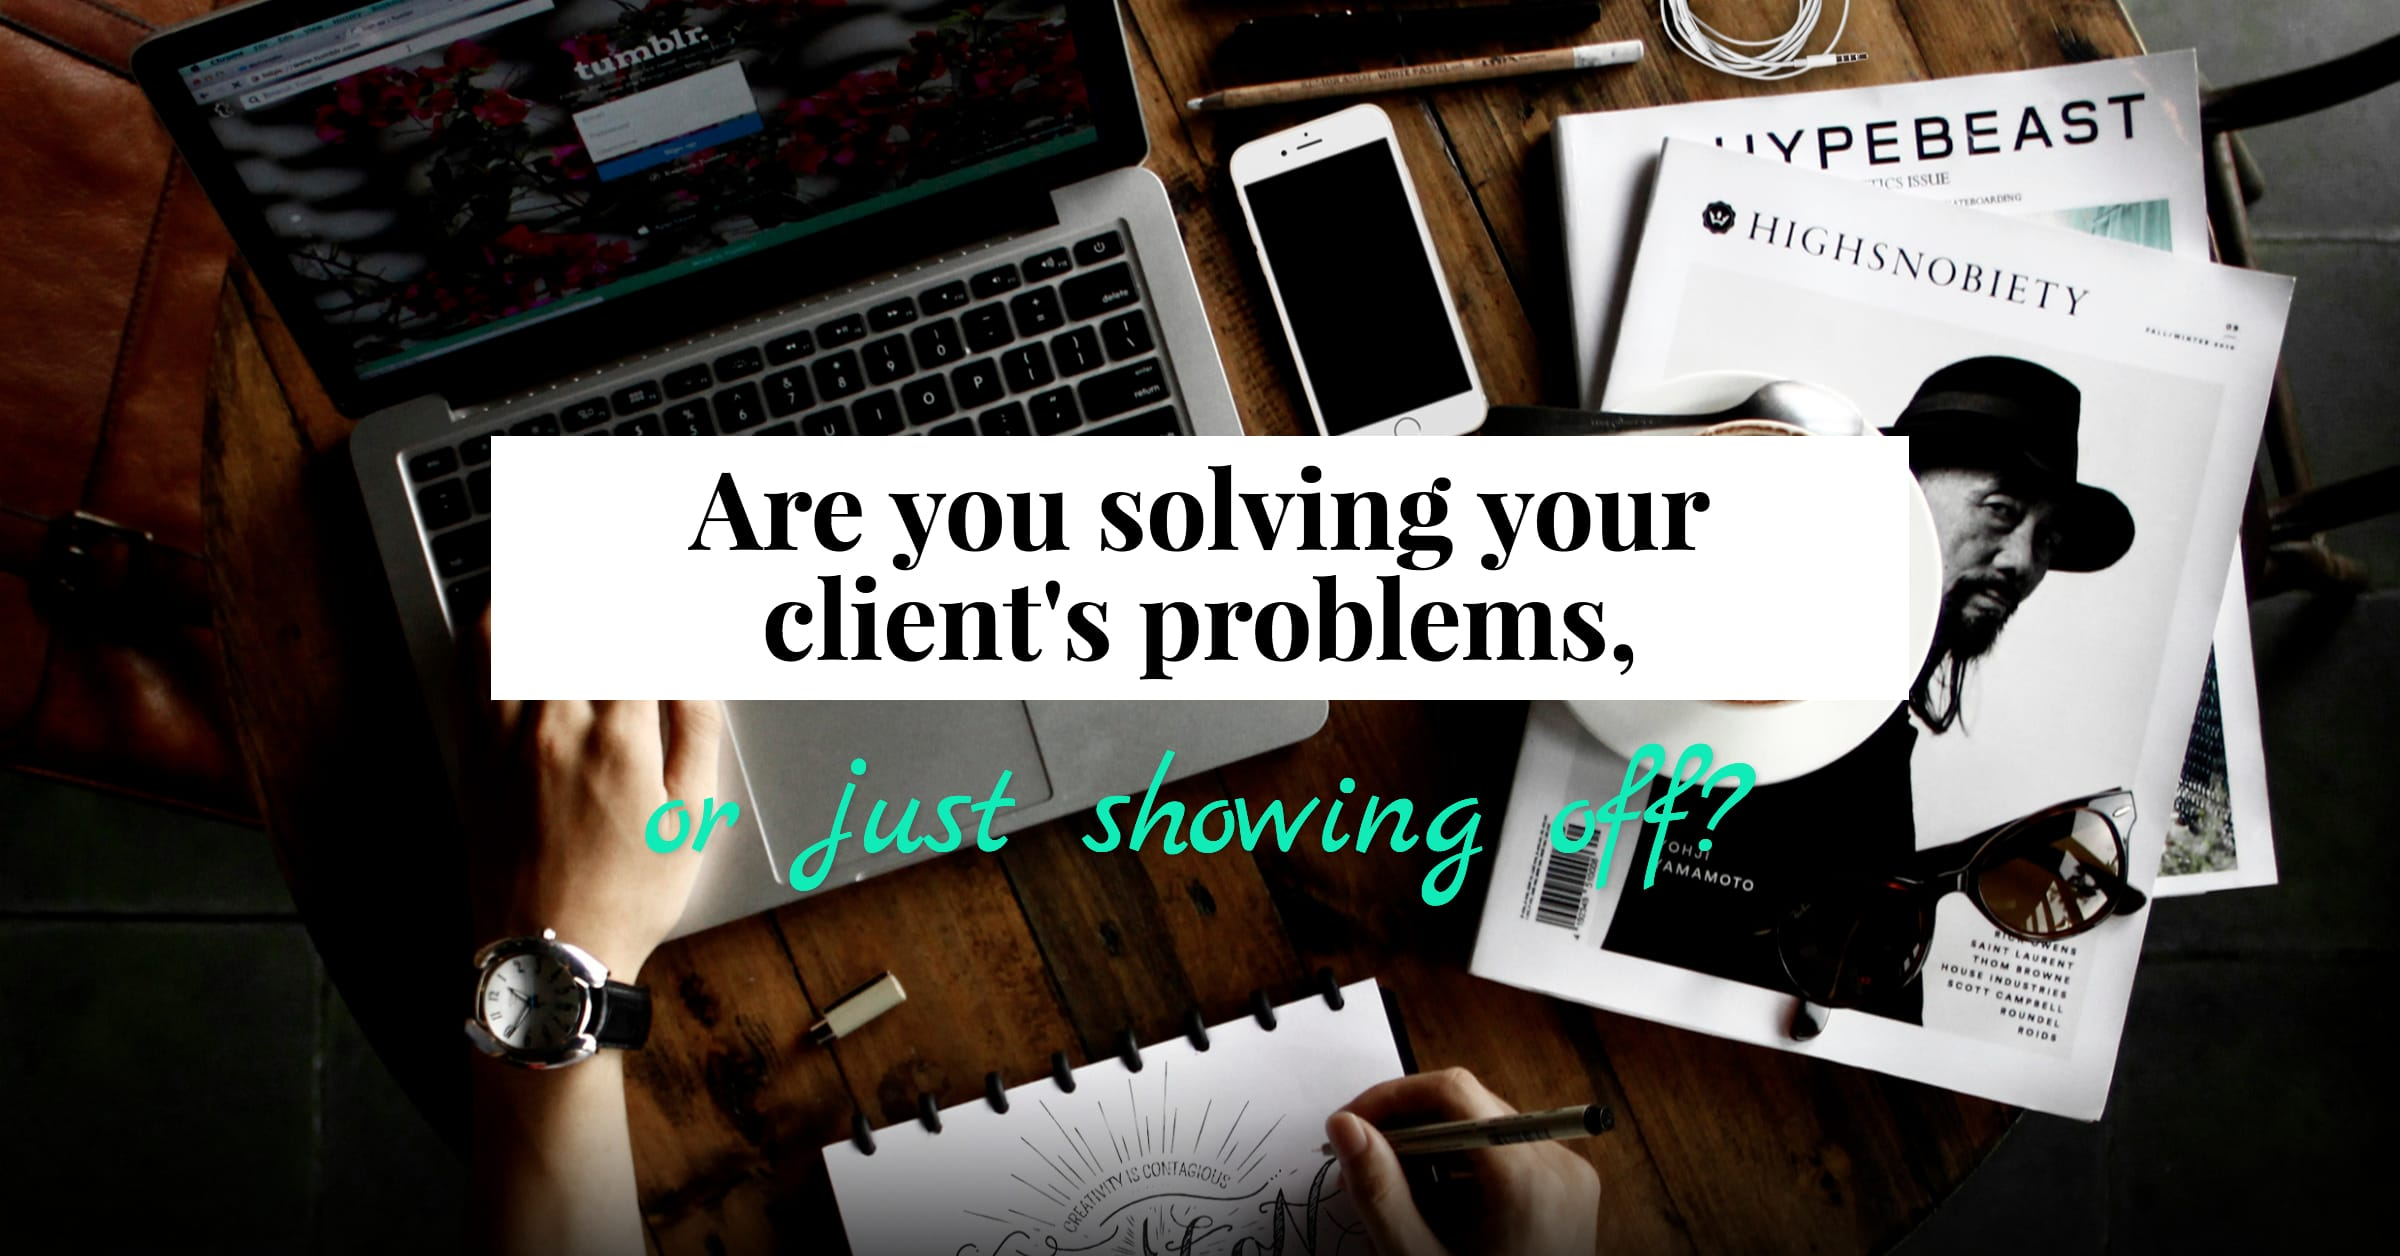 Are you solving your client's problems, or just showing off?